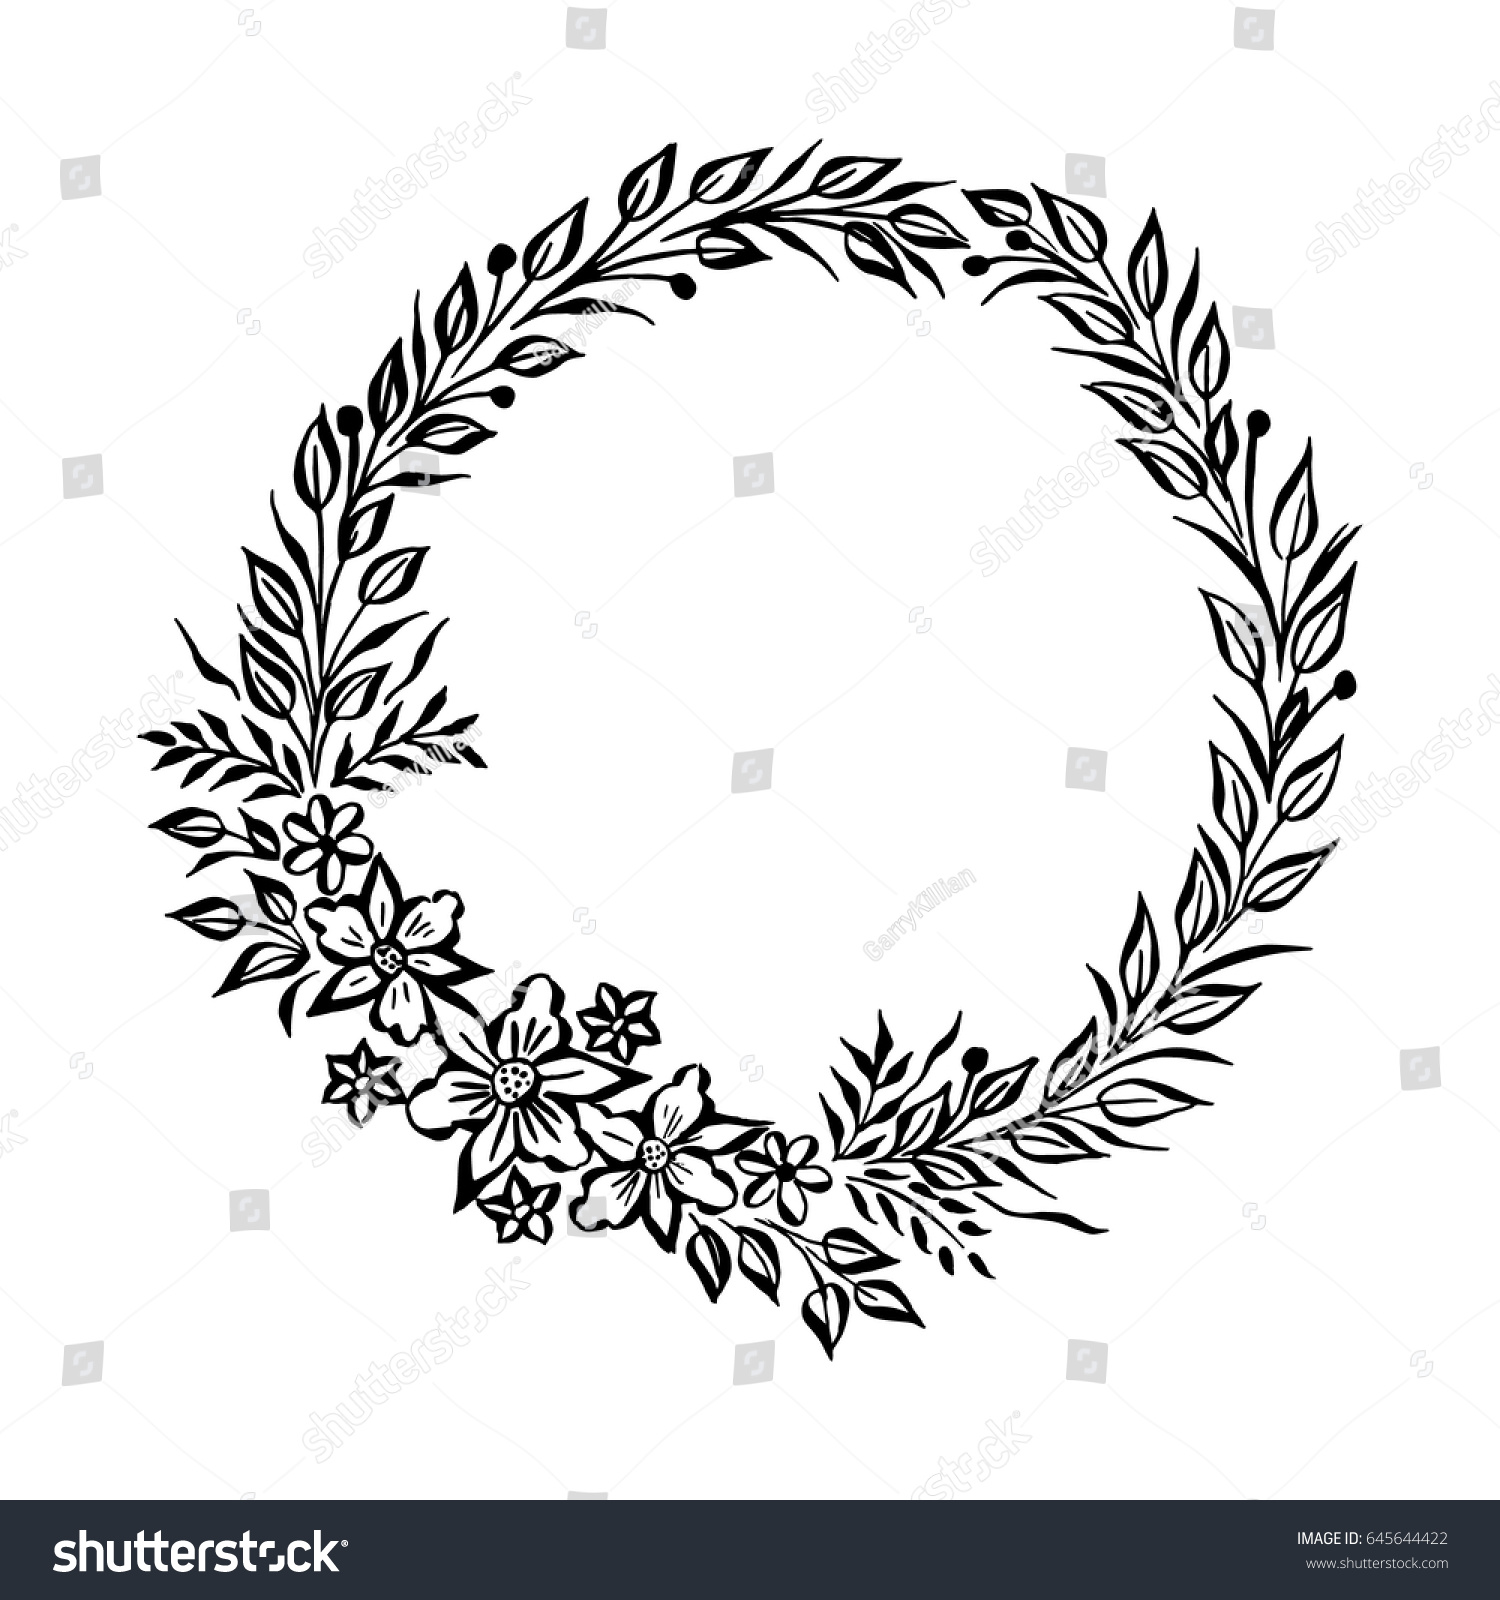 Round frame with decorative branch vector illustration stock - Vector Fine Floral Round Frame Decorative Element For Invitations And Cards Border Element